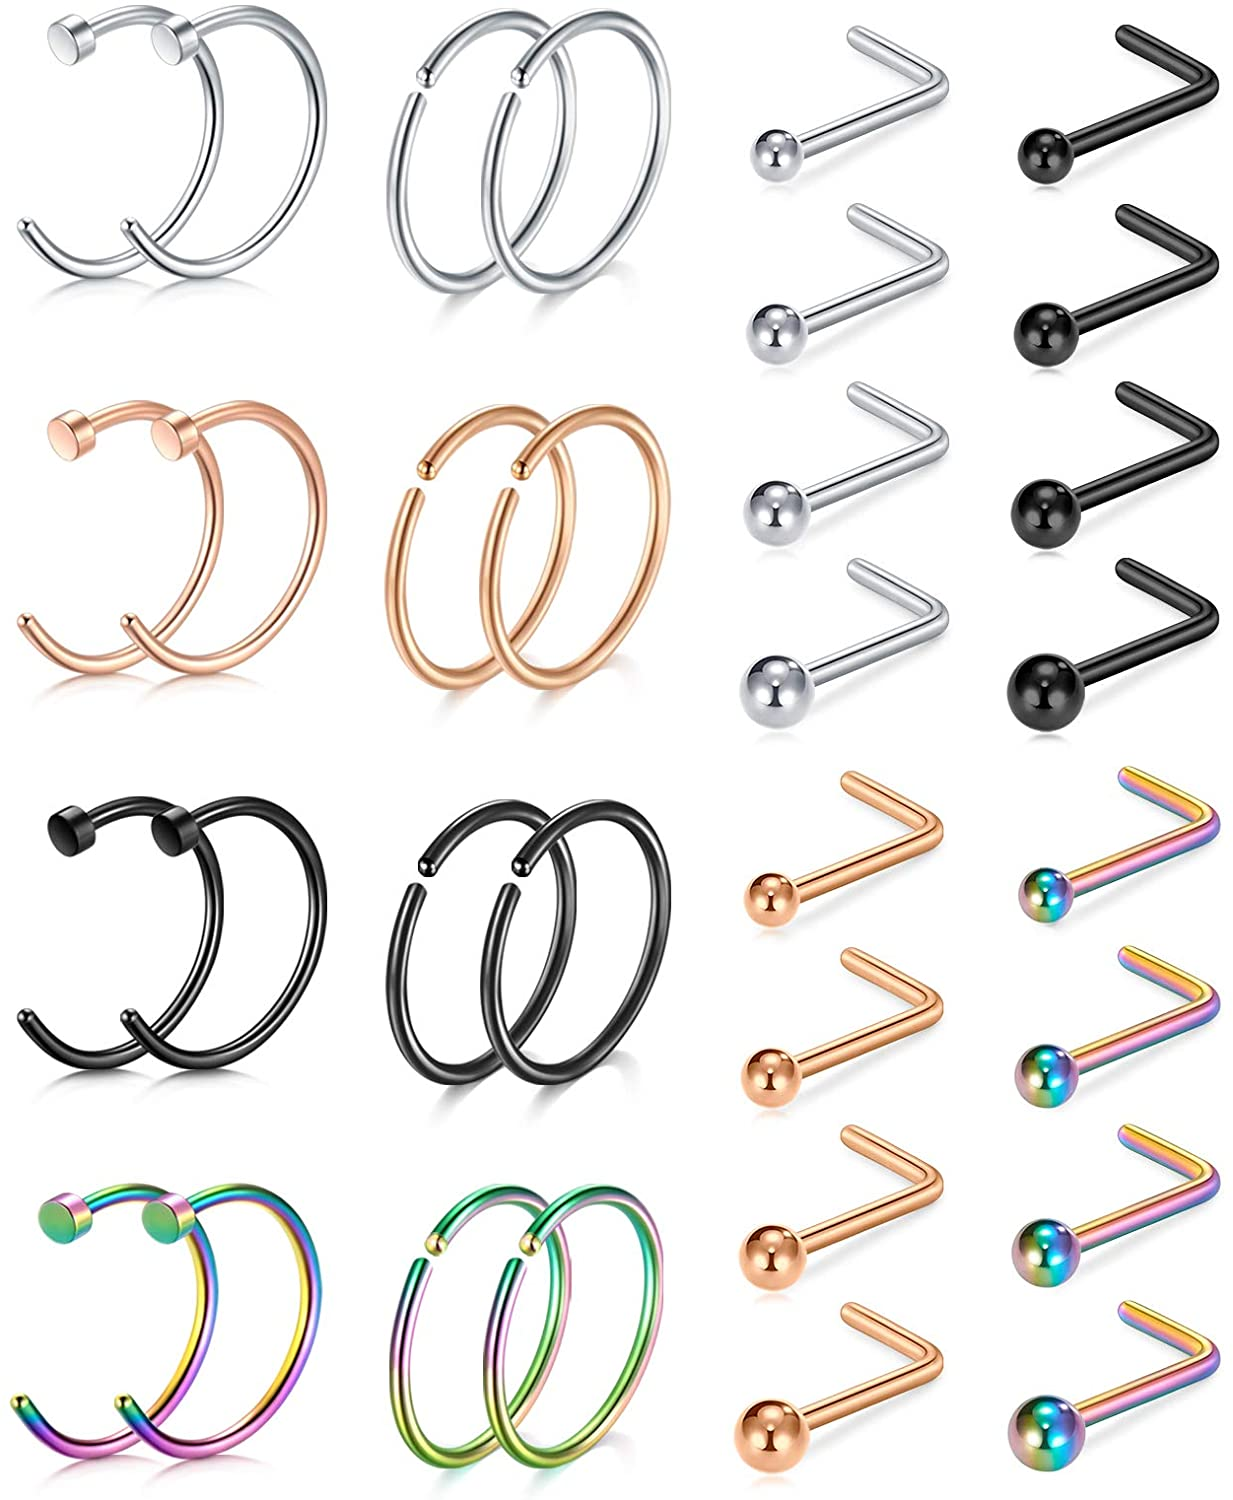 AVYRING 18g Nose Rings Nose Studs Surgical Steel L Shape Screw Nostril Ring Piercing Piercing Jewelry Set for Women Men